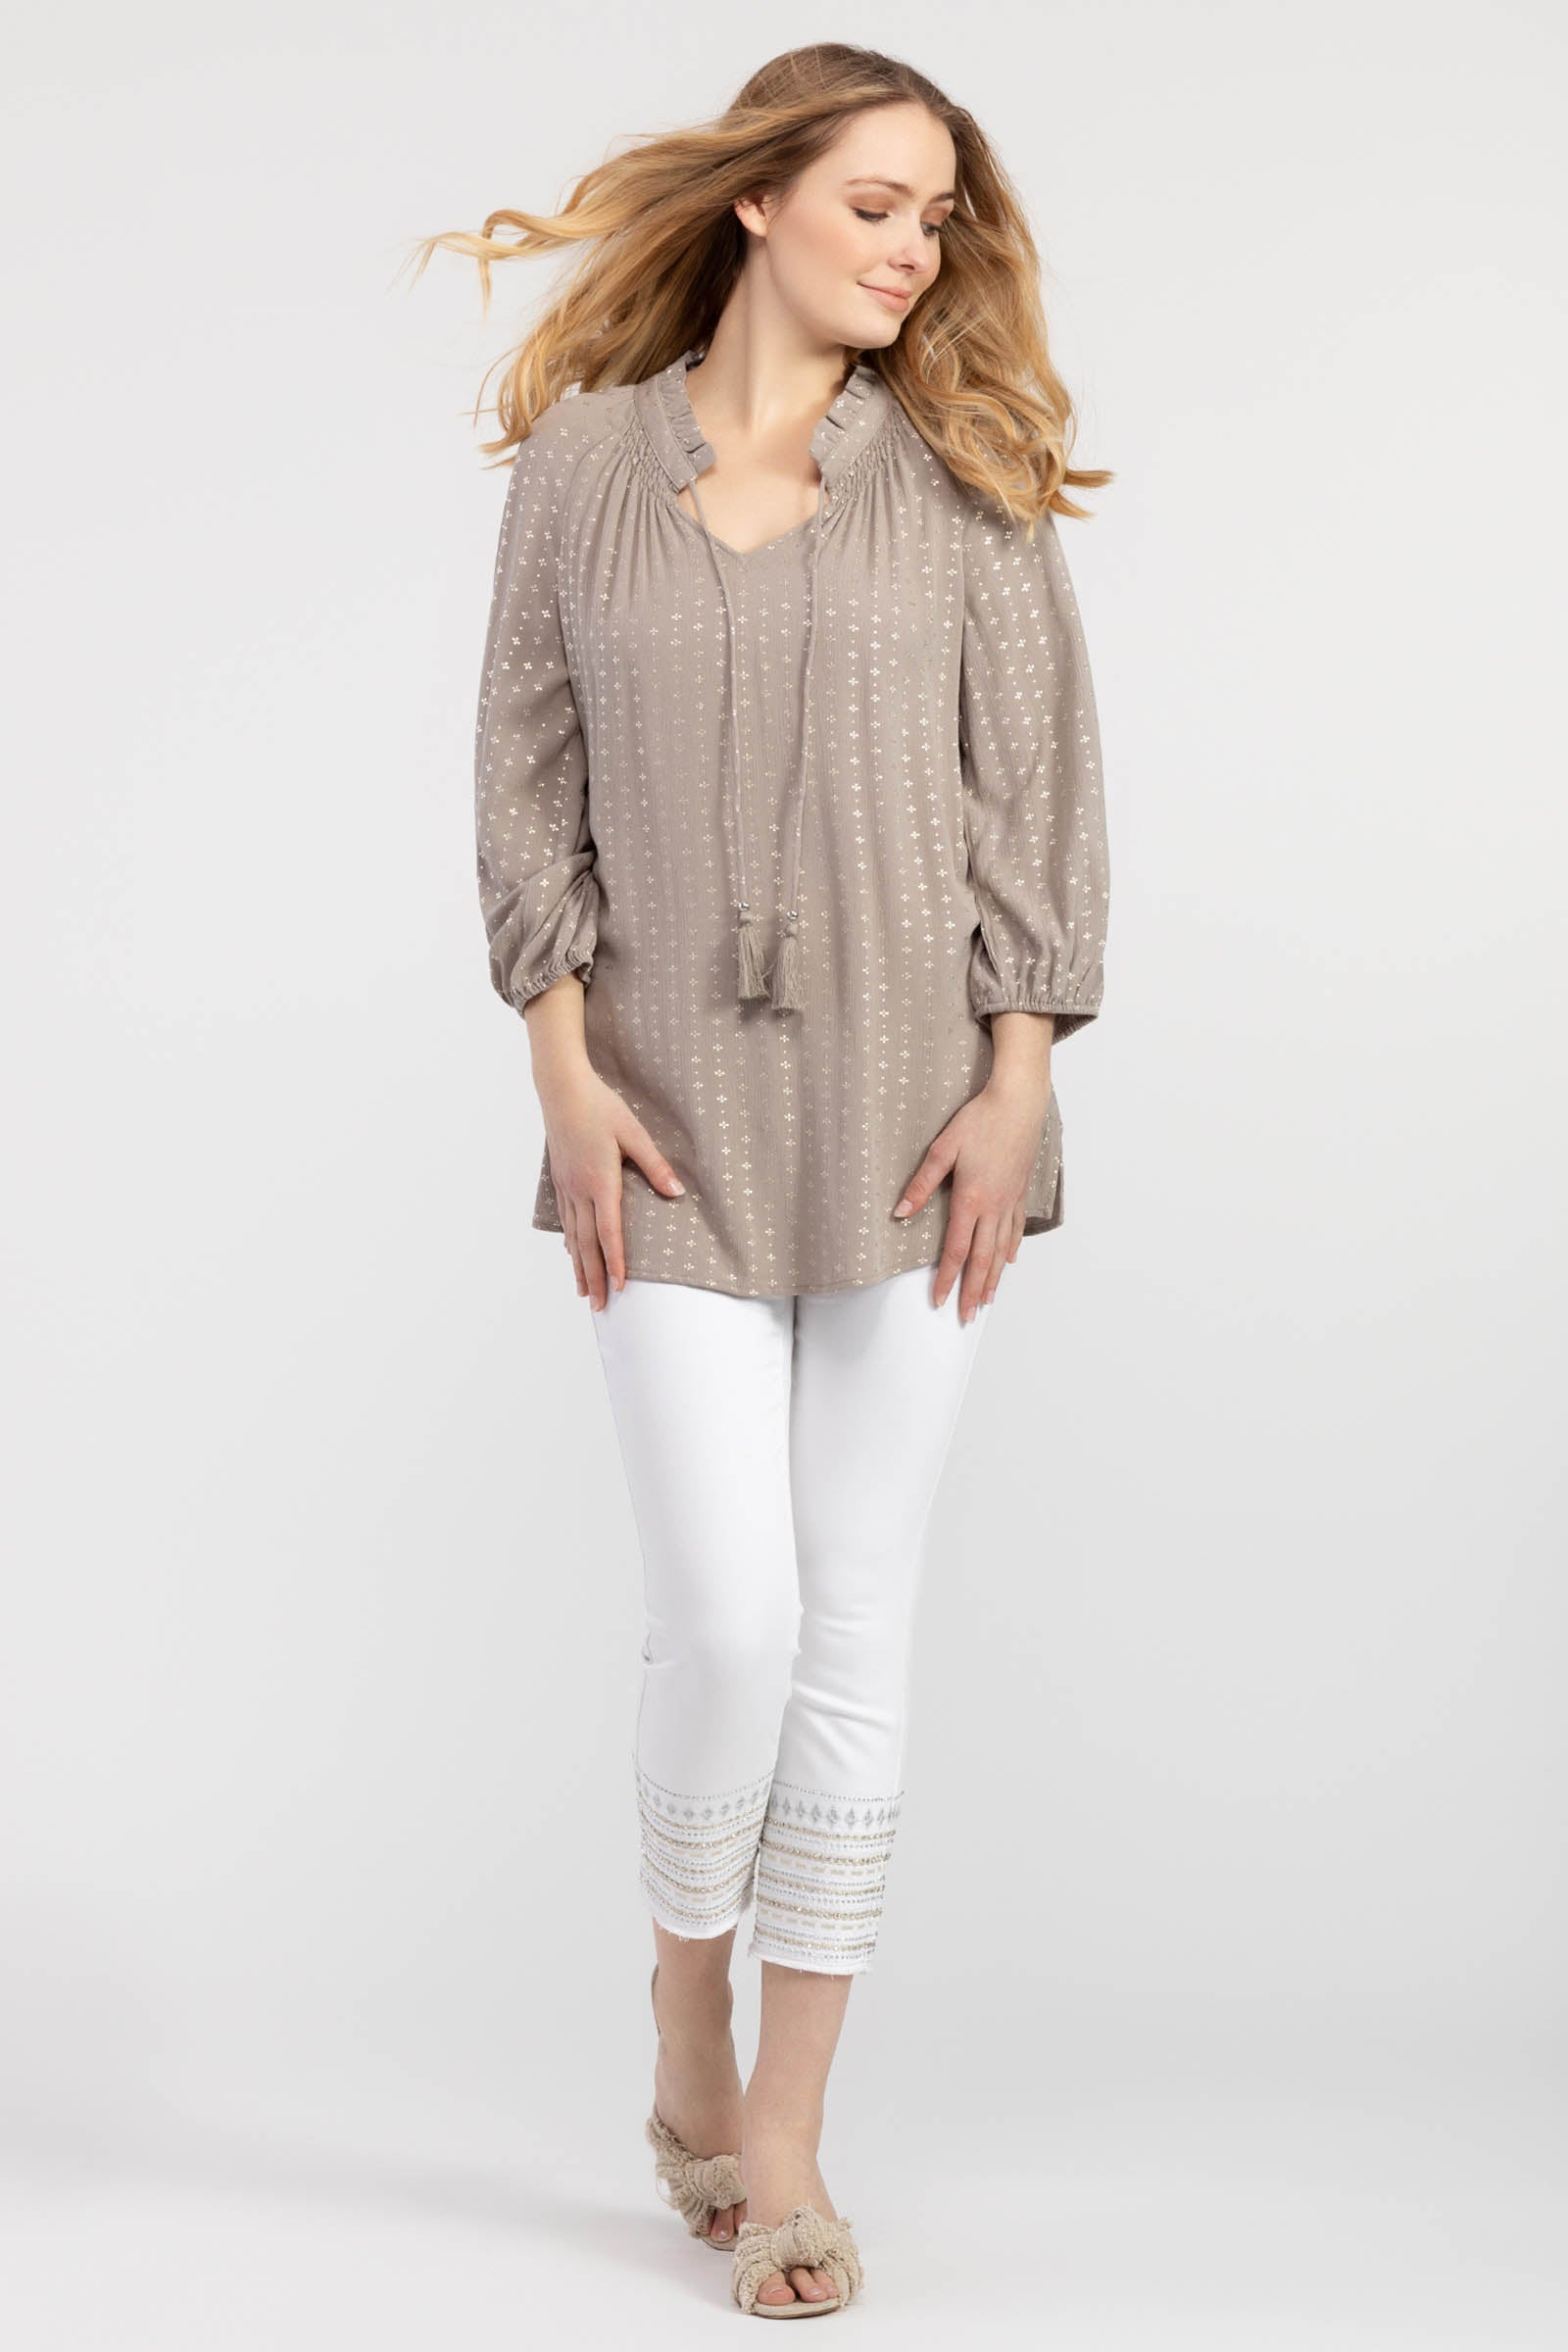 Dry Sand Blouse With Tassels